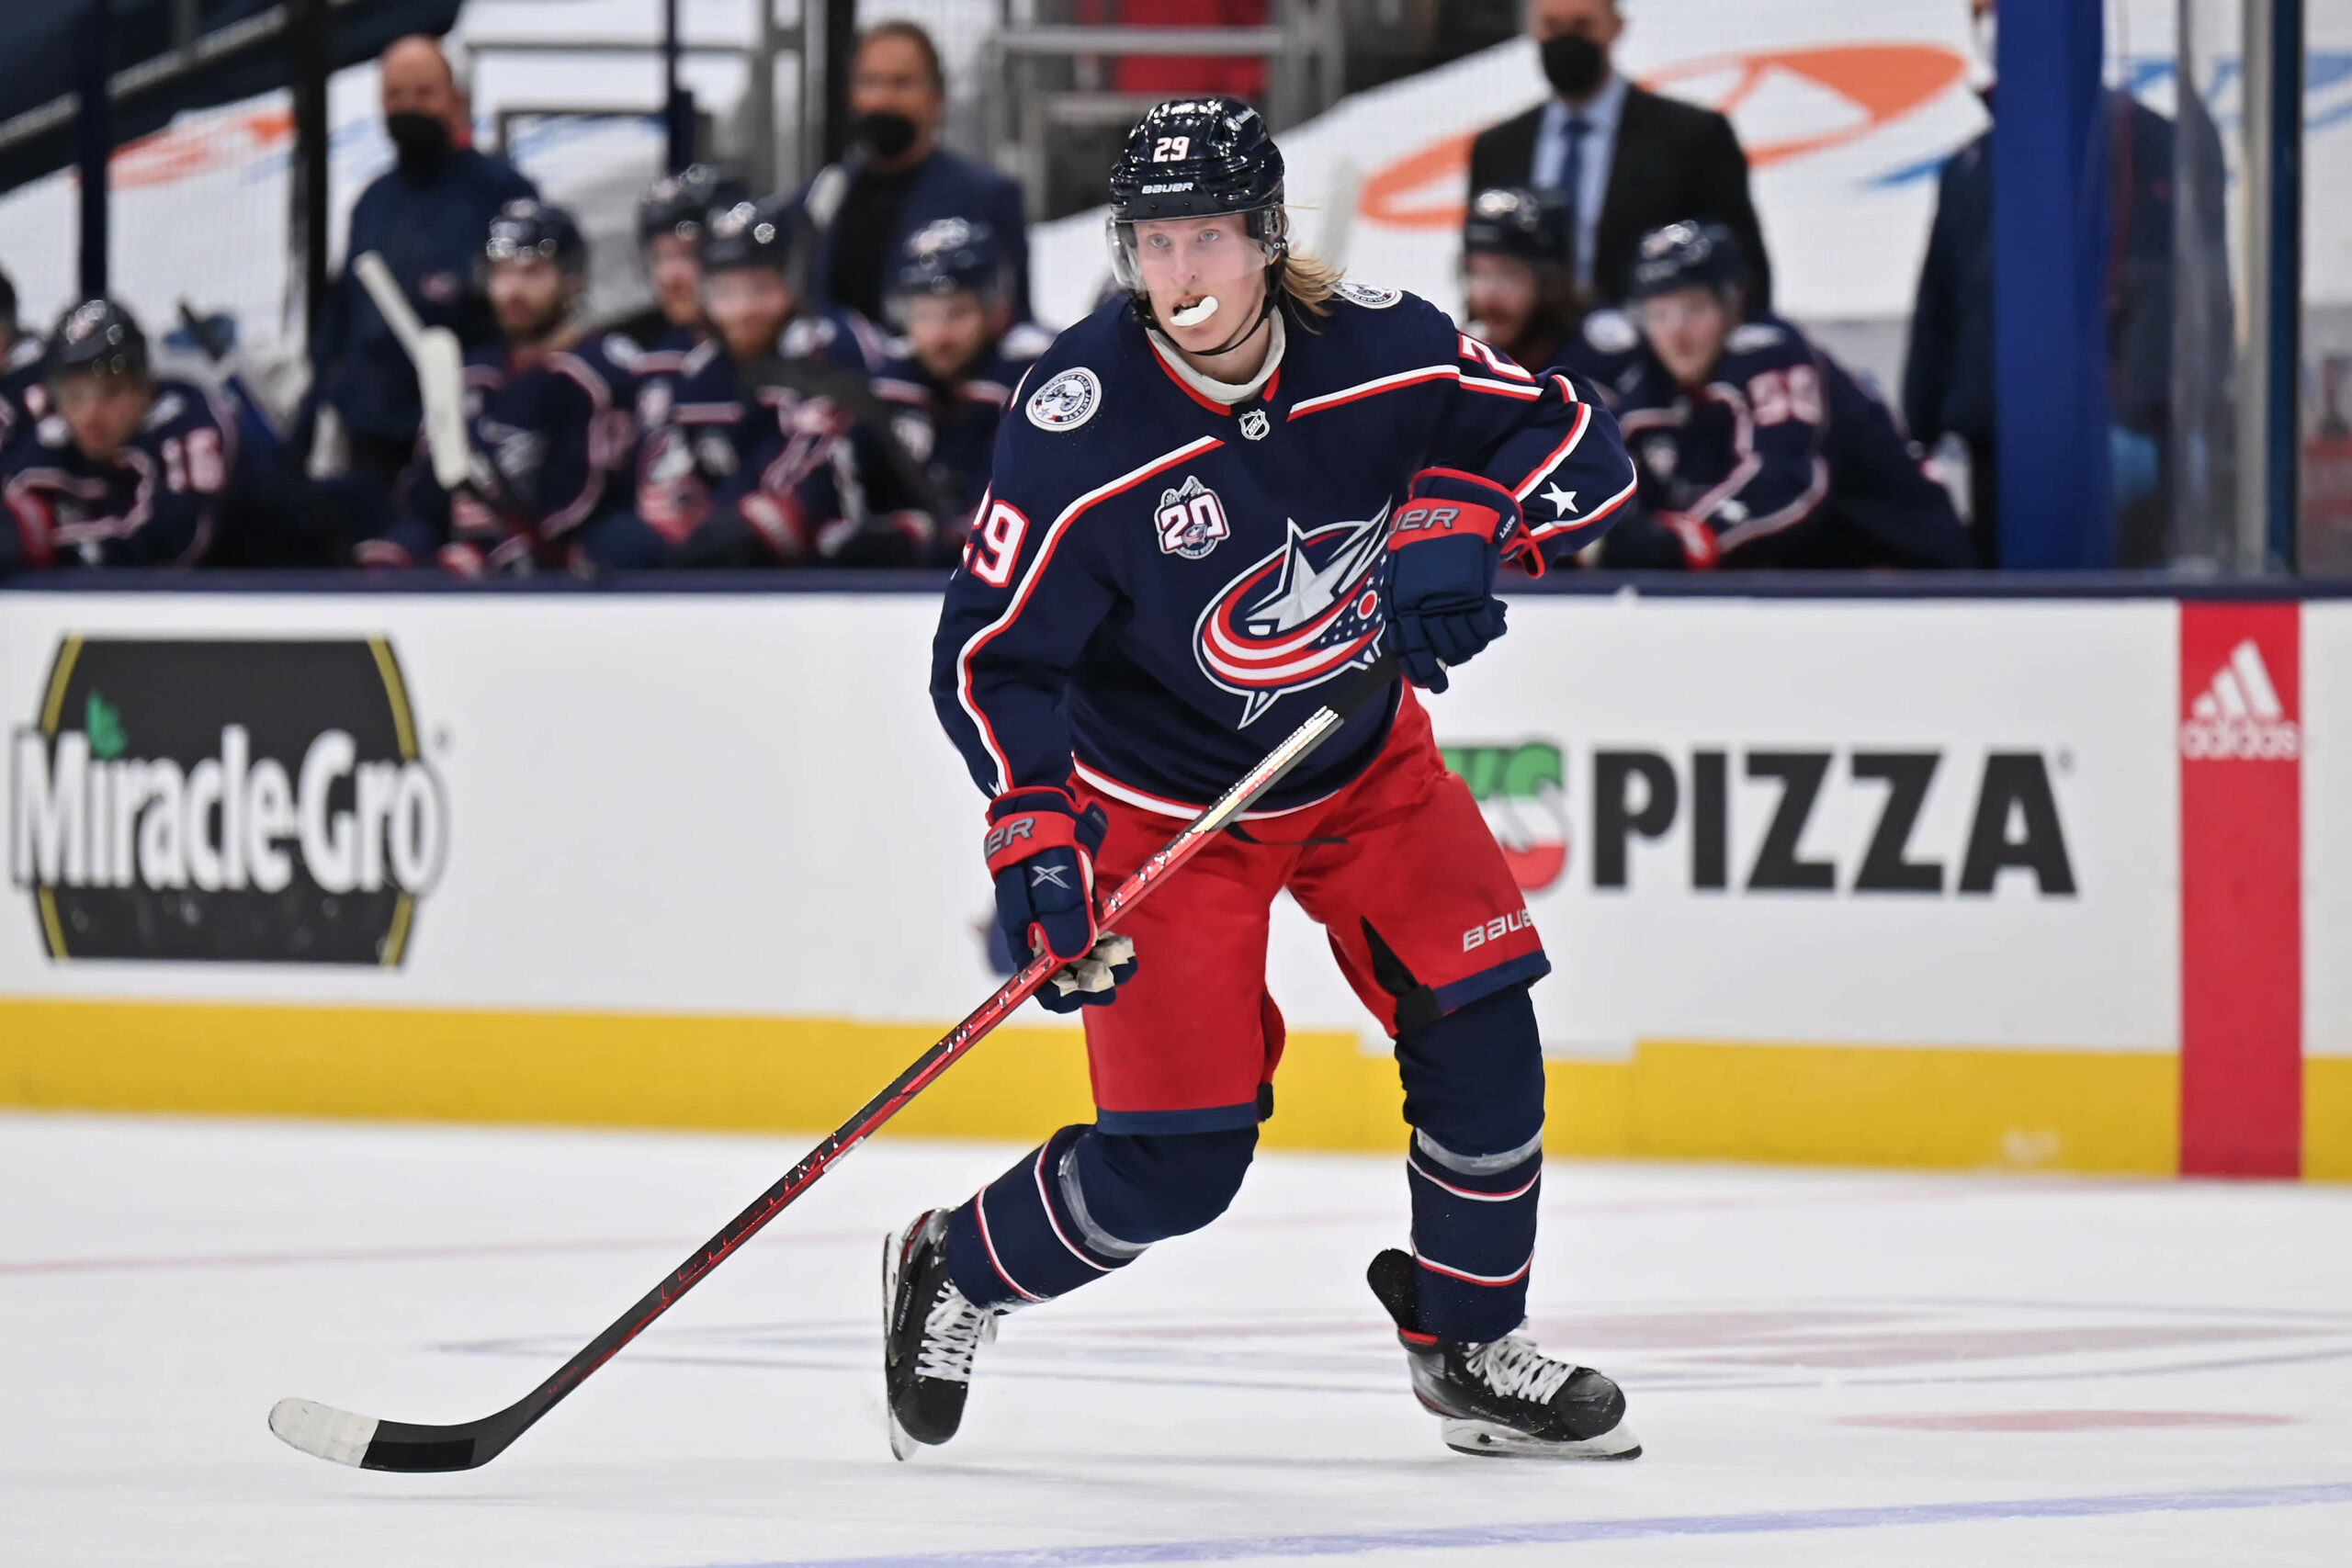 Arizona Coyotes vs. Columbus Blue Jackets Prediction, Preview, and Odds - 10-14-2021